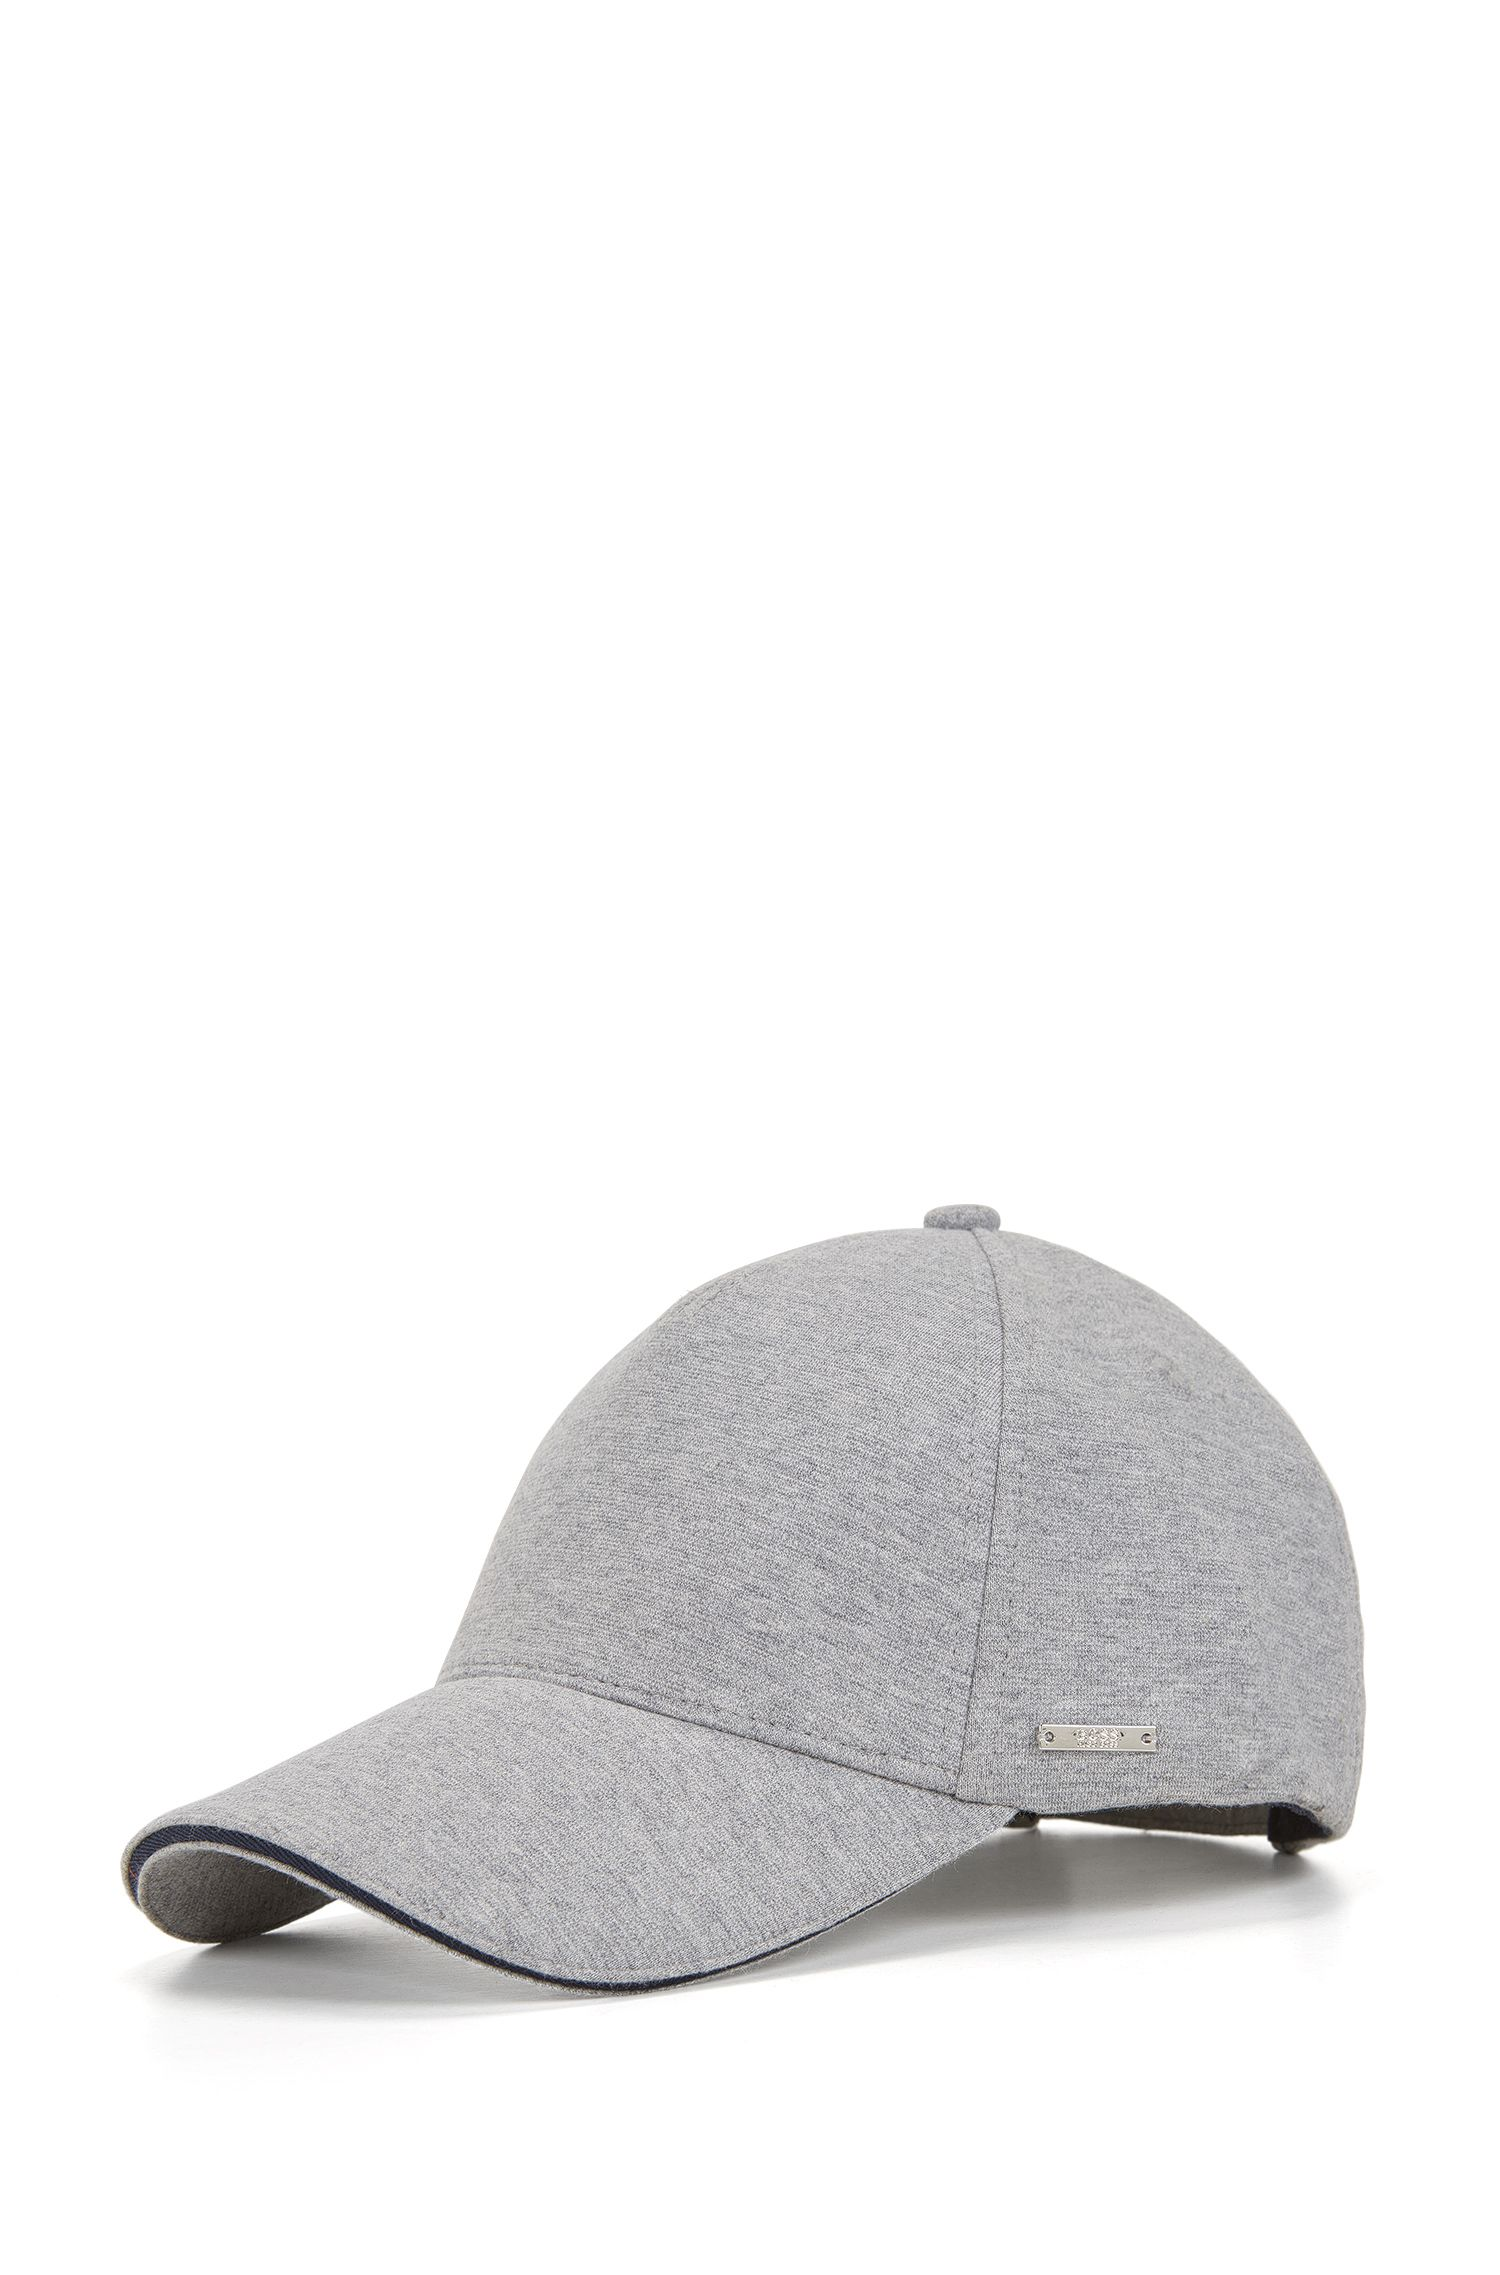 Cotton Blend Twill Cap | Serios